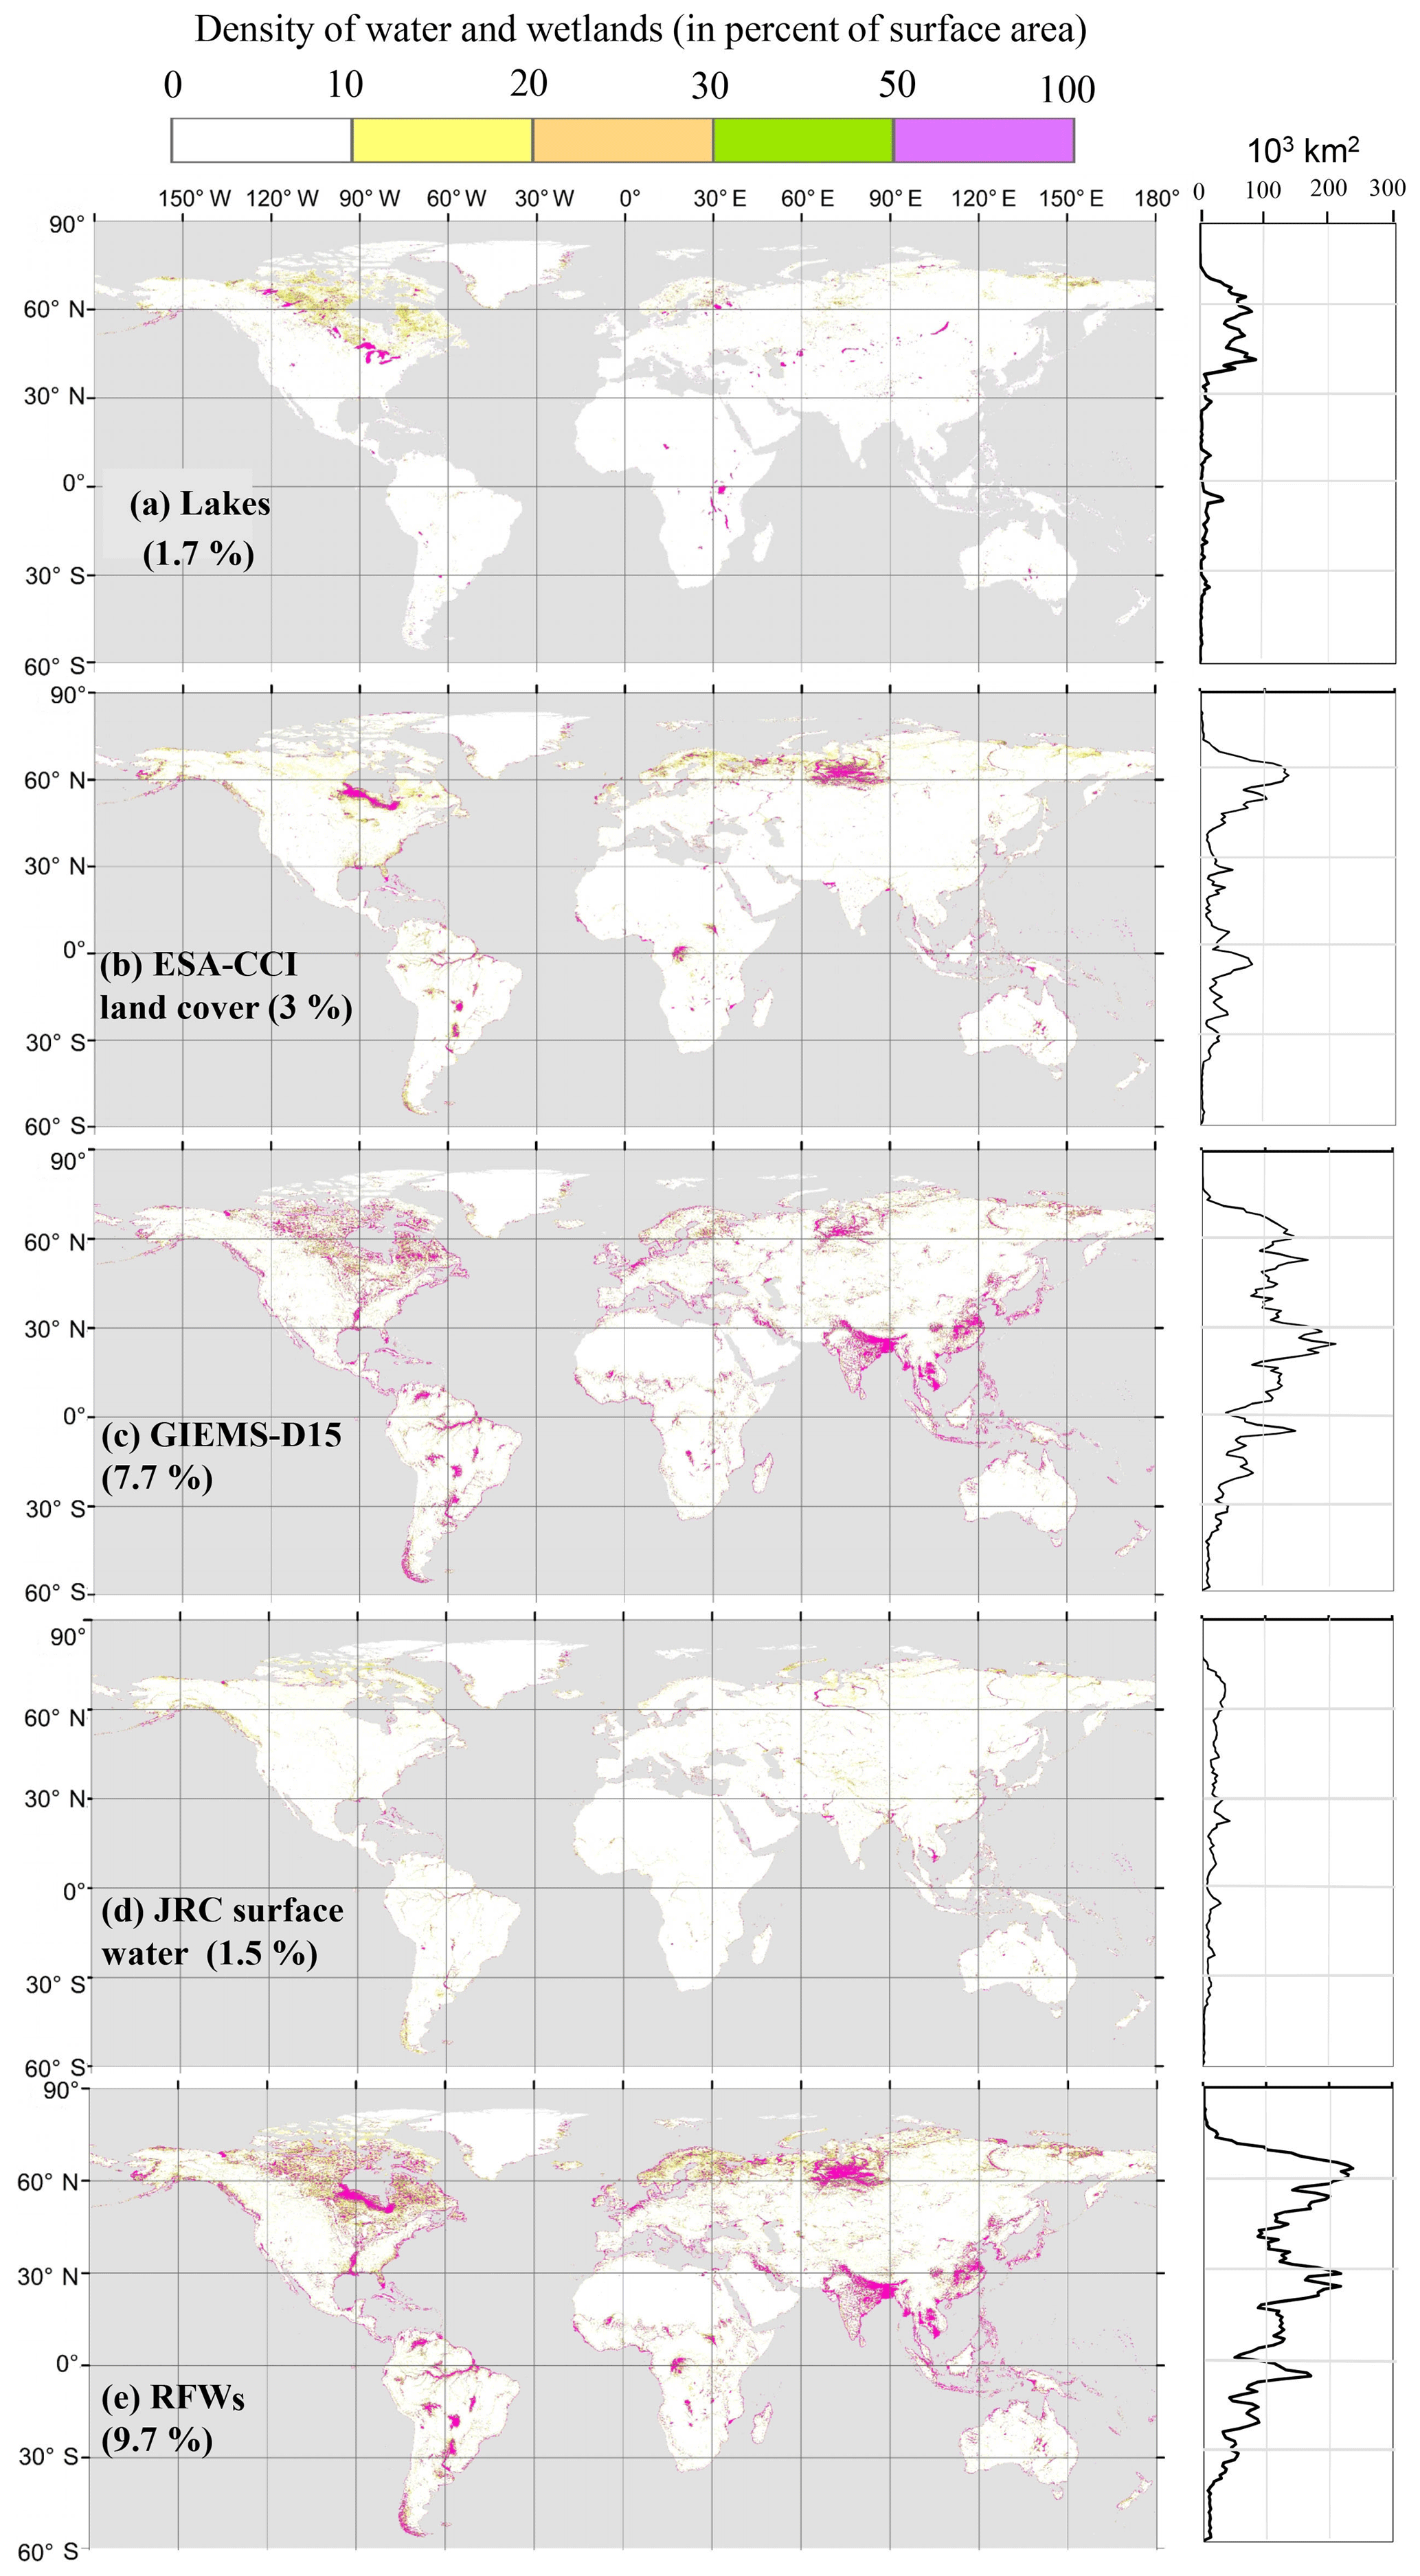 ESSD - Multi-source global wetland maps combining surface water